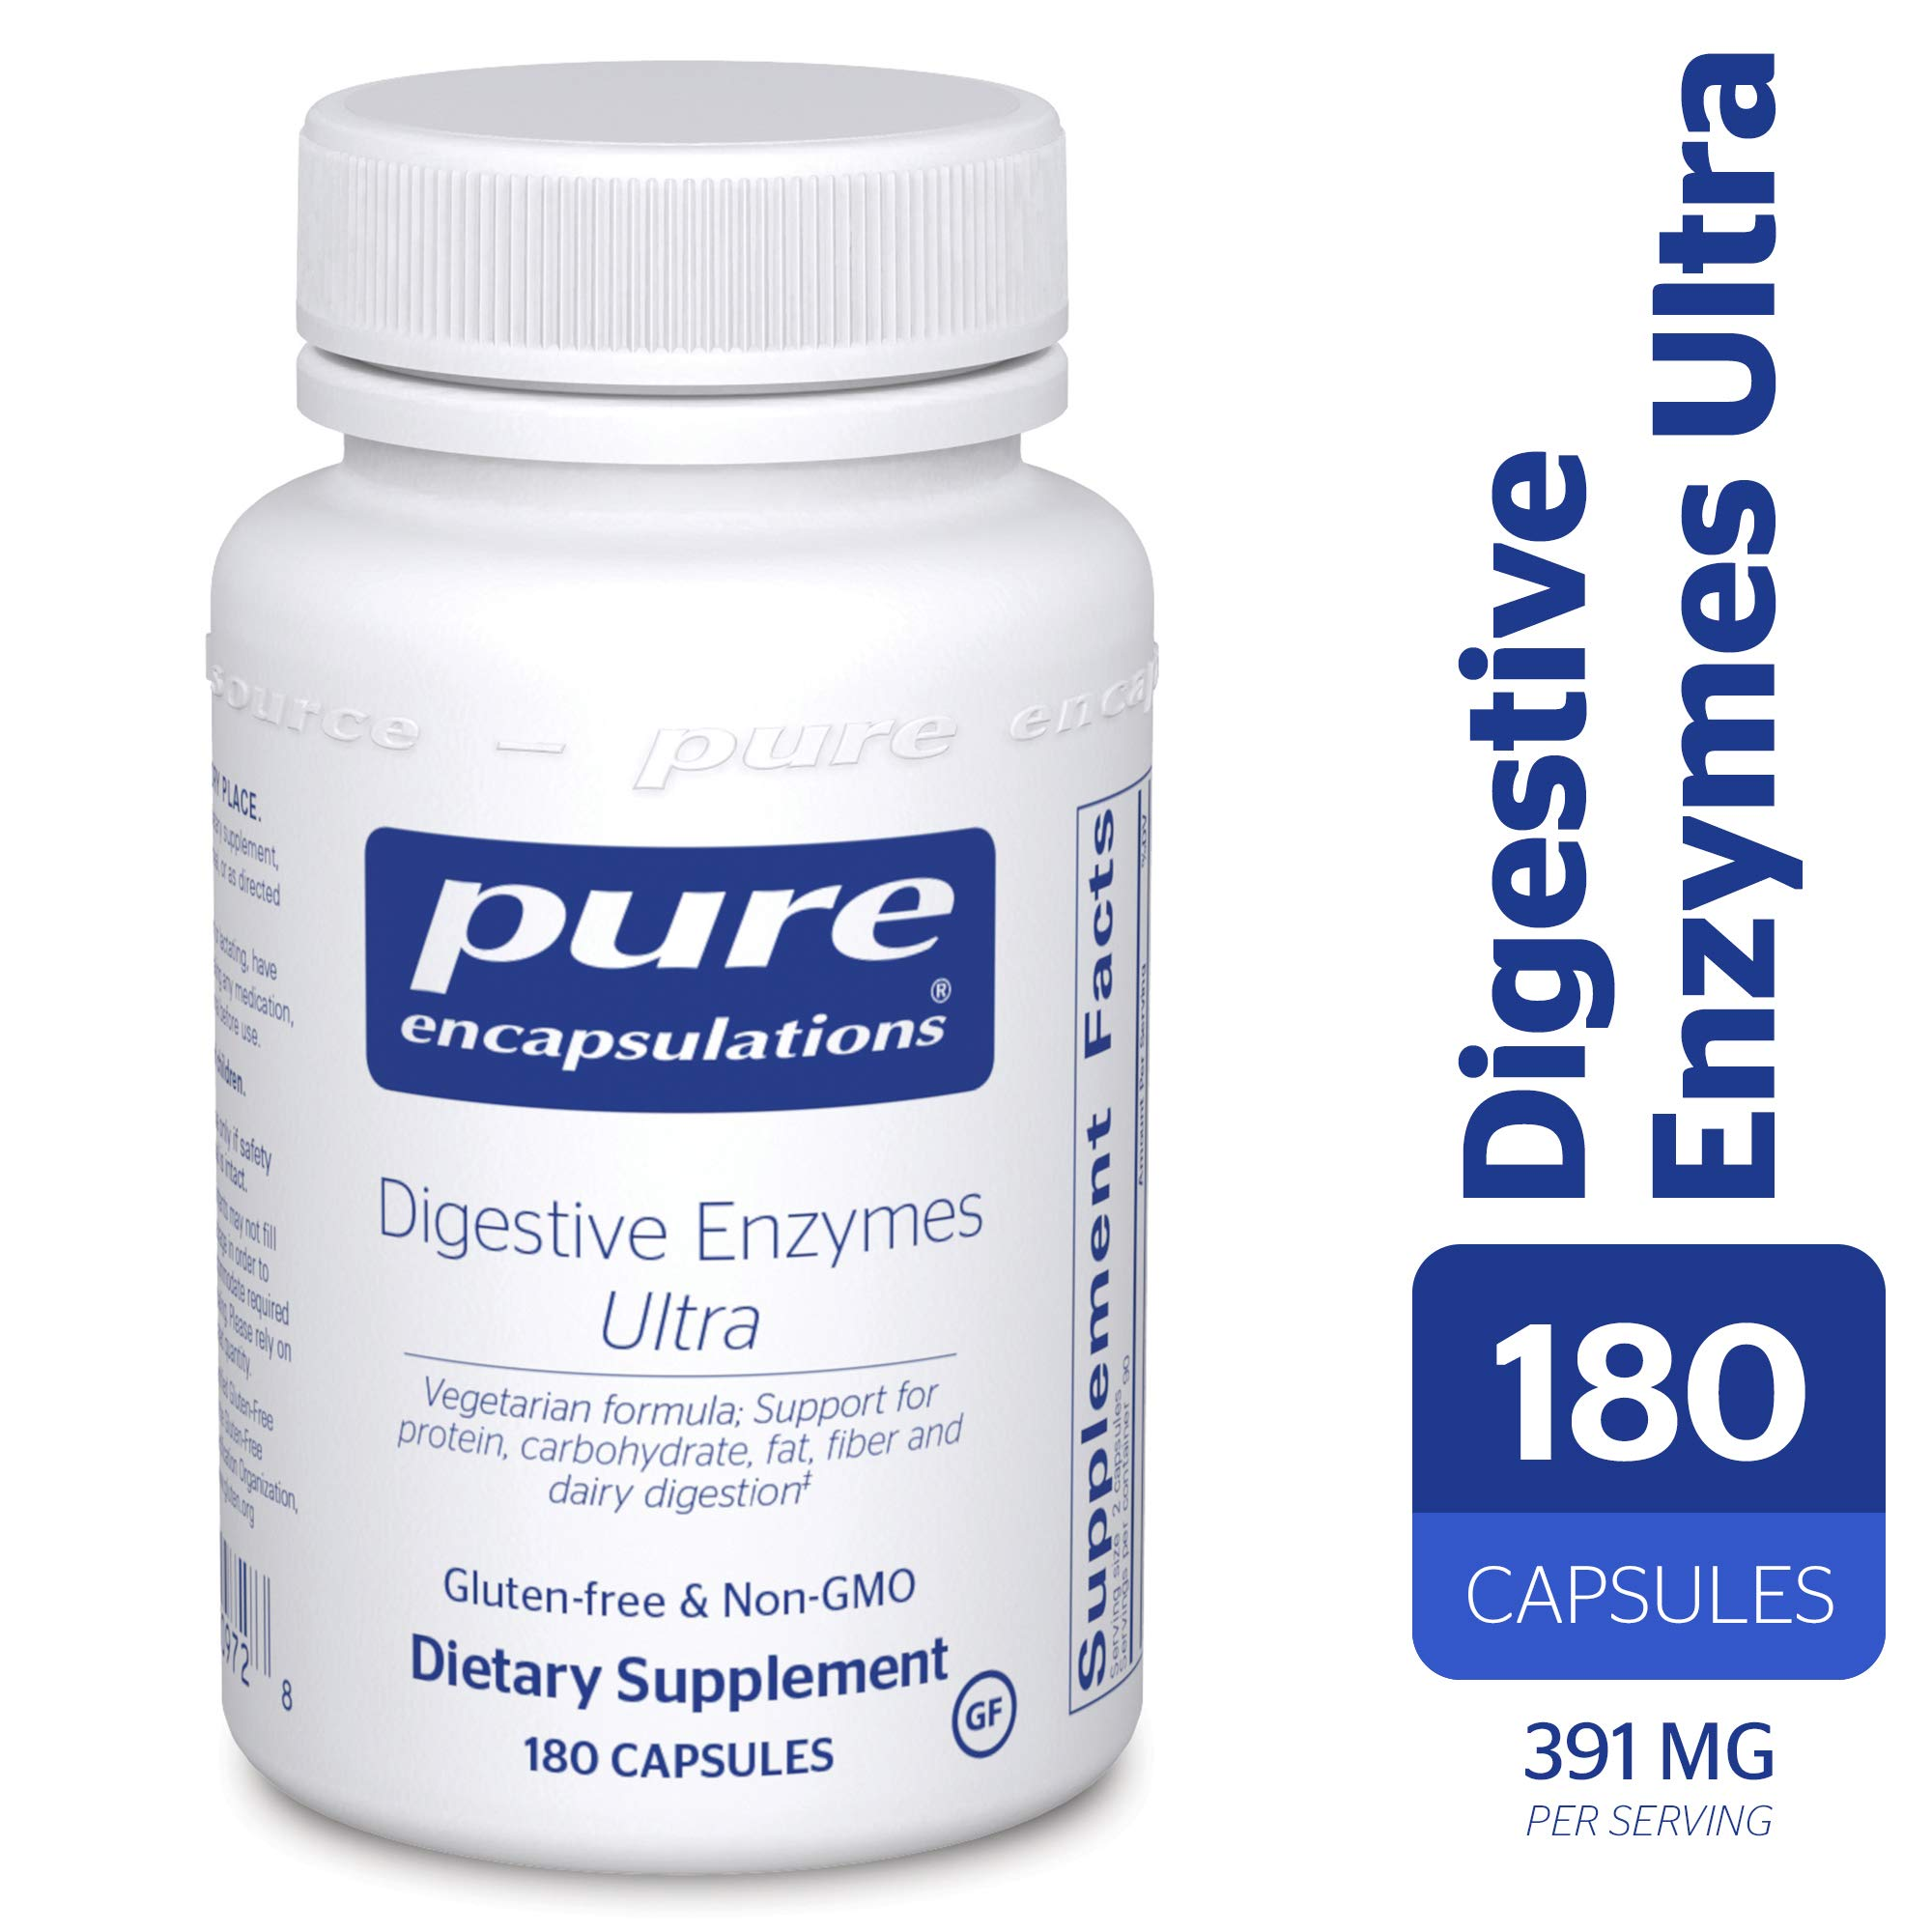 Pure Encapsulations - Digestive Enzymes Ultra - Comprehensive Blend of Vegetarian Digestive Enzymes - 180 Capsules by Pure Encapsulations